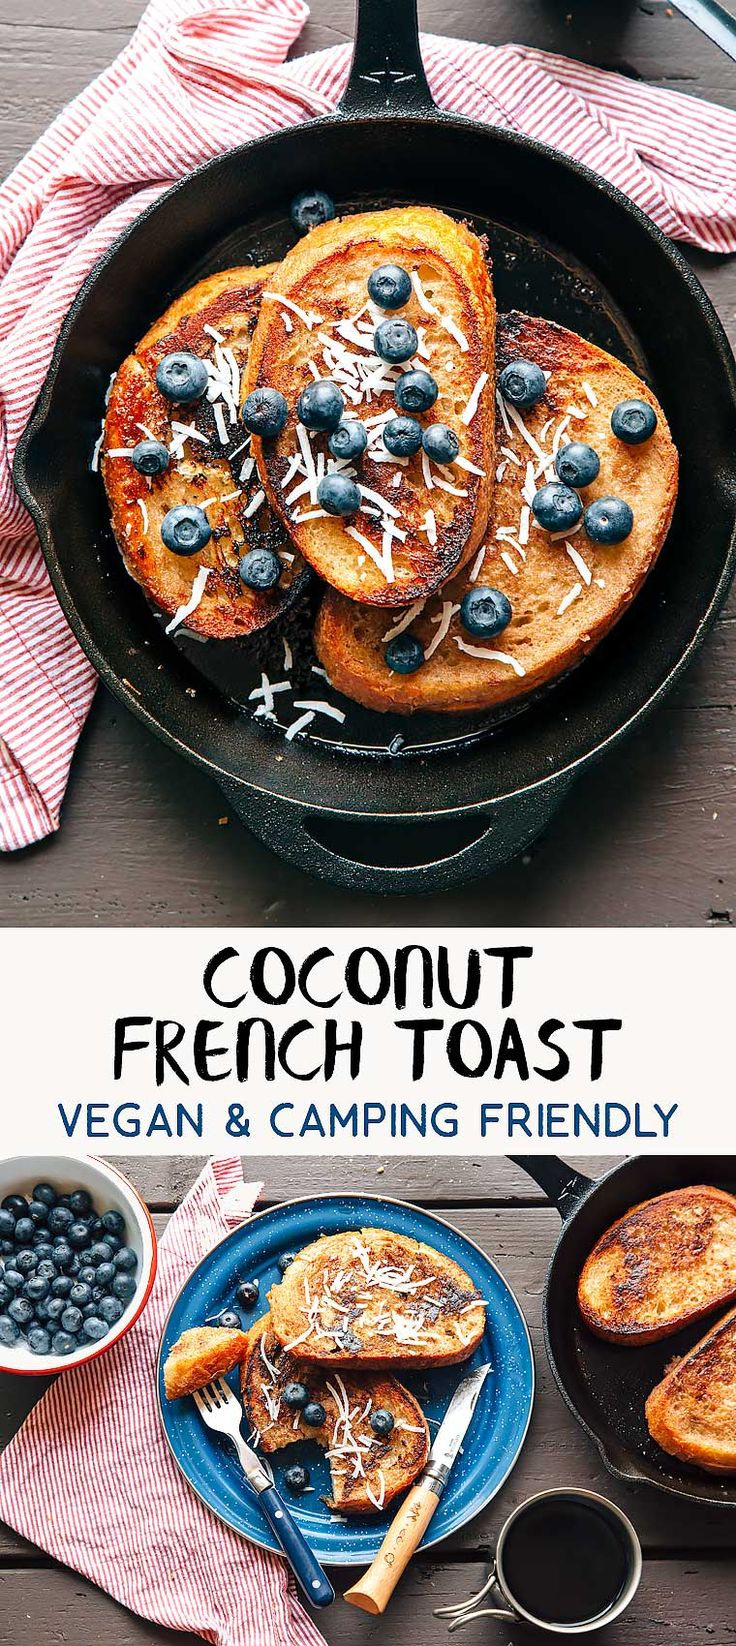 83 best vegan camping food images on pinterest camping foods banana coconut french toast coconut french toastvegan french toastcamping ideascamping forumfinder Gallery